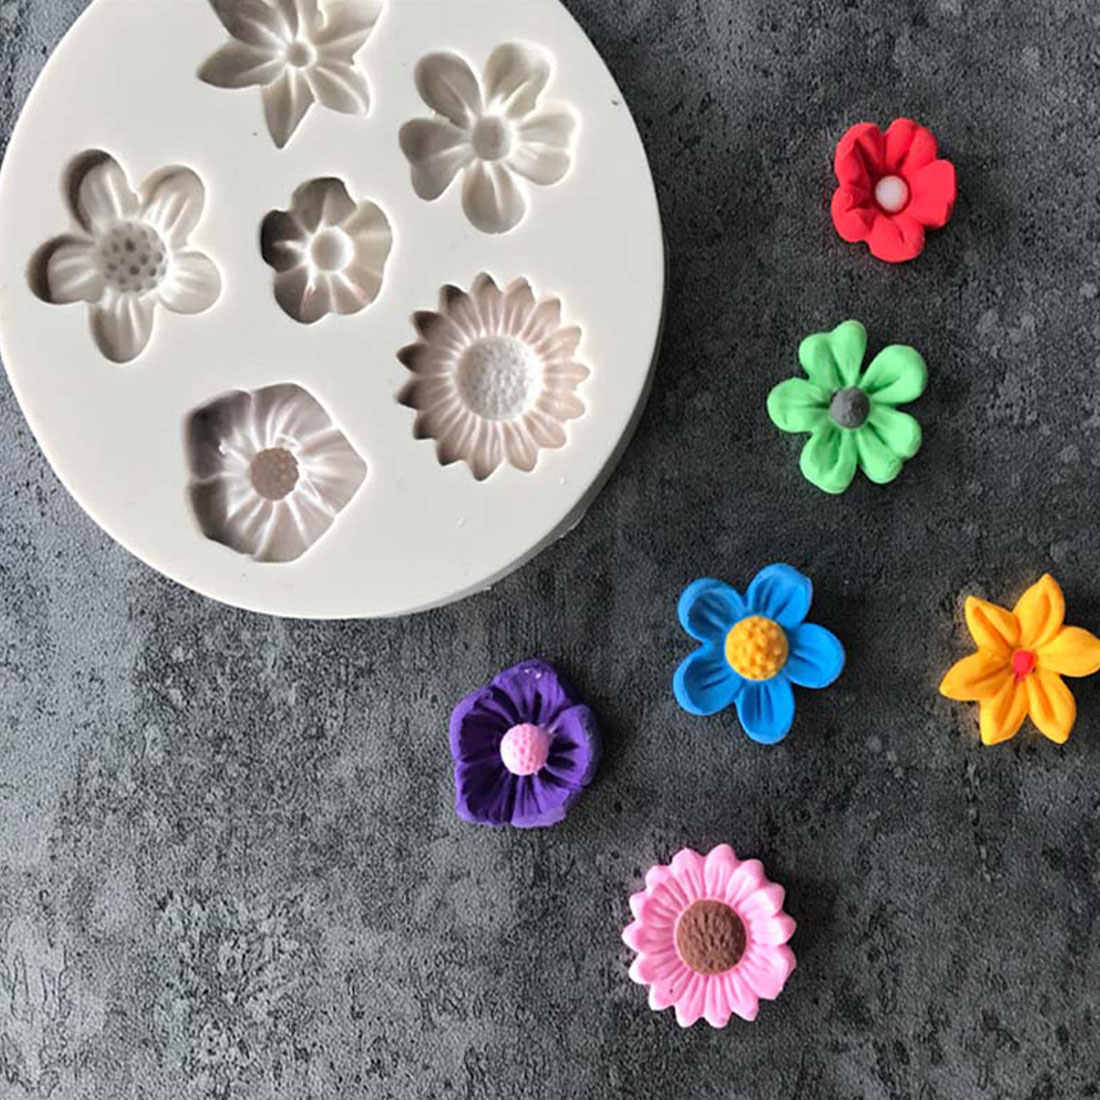 Fashion Nice 3D Flower Fondant Cake DIY Mold Silicone Mould Sugarcraft Decoration Baking Decorating Tools Kitchen Accessorie